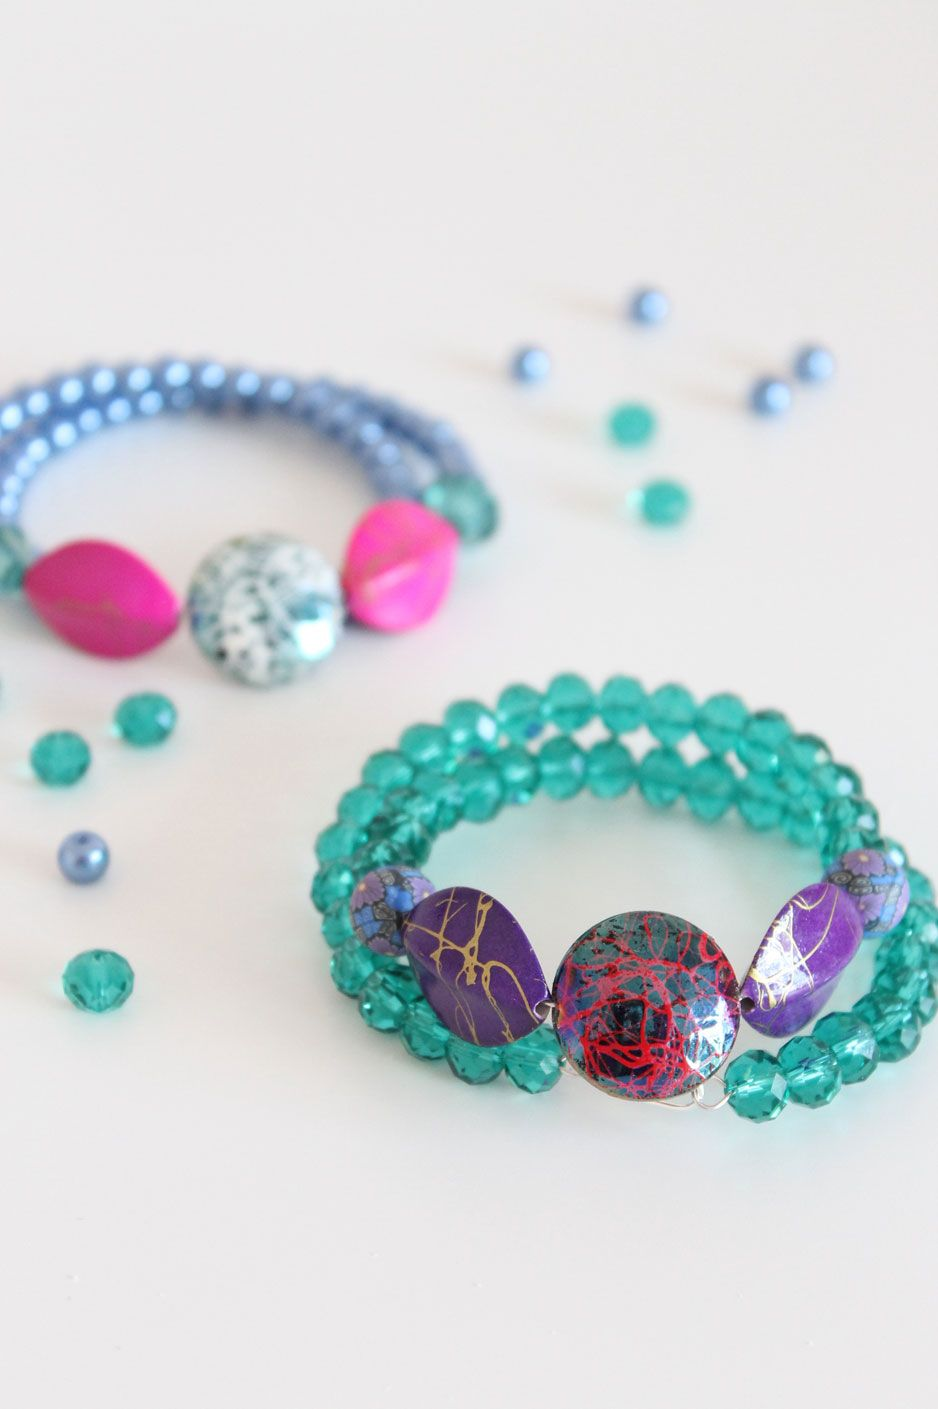 DIY : Beaded Cuff Bracelet - Jewelry From Home Blog